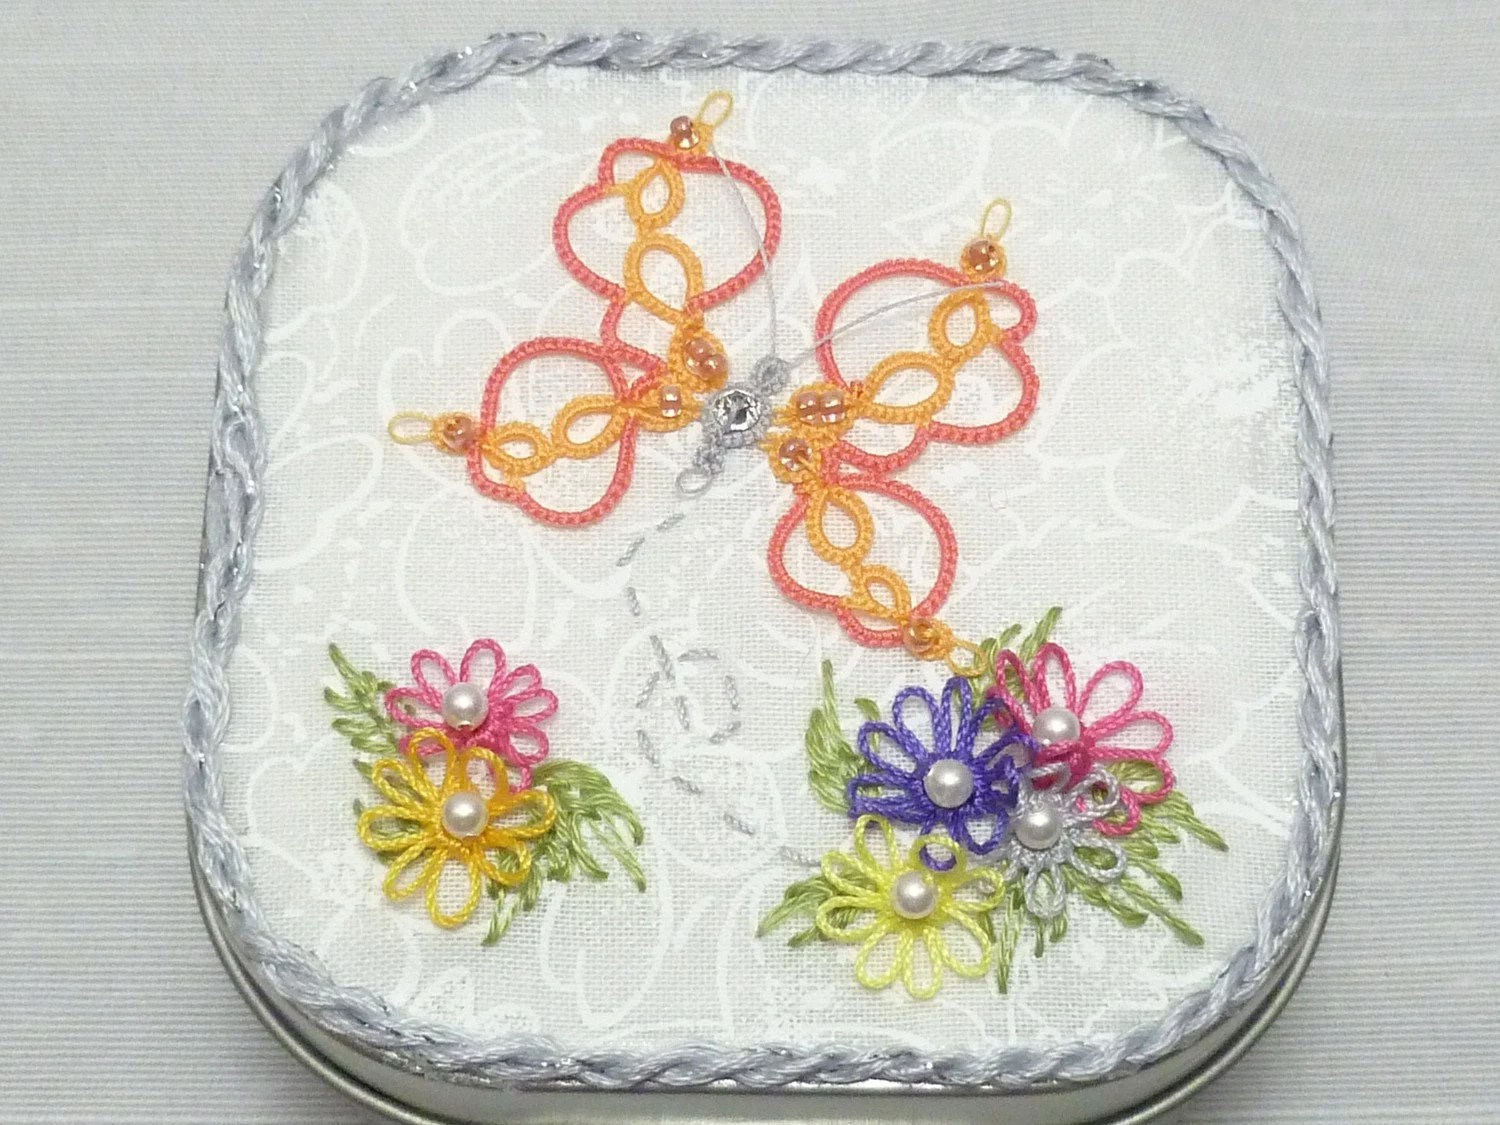 Tatted Lace Butterfly Garden -Sophie's Garden